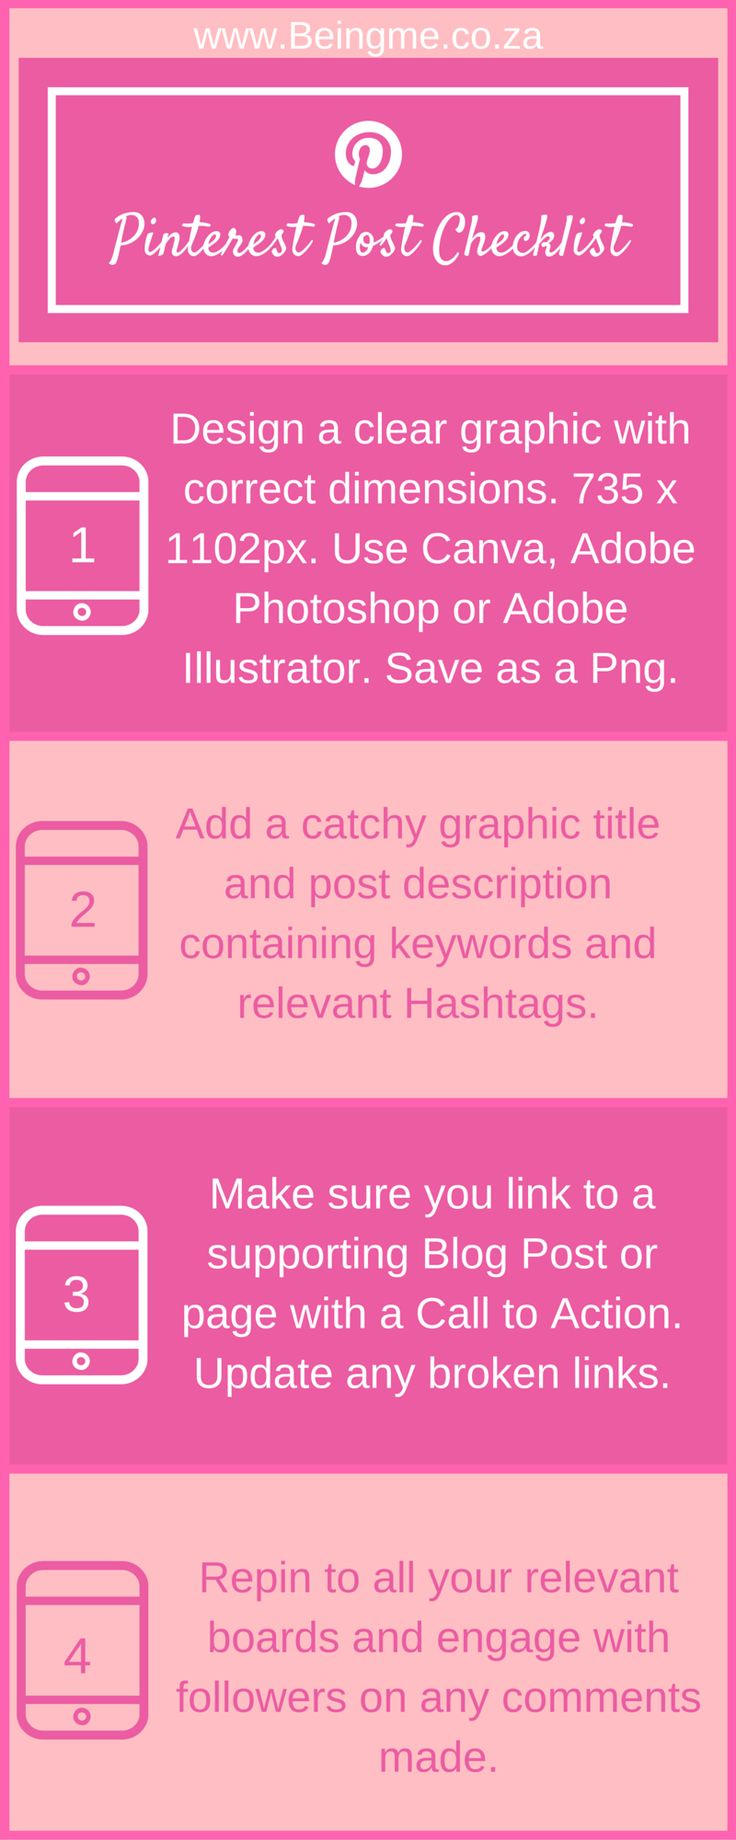 If you are interested in starting to use Pinterest but not sure of the steps to post a great pin that will get saved, then just follow these 4 easy steps and you will be getting Re-pins in no time. #Pinterest #HowToGetRepins #SocialMediaTips #BloggingTips